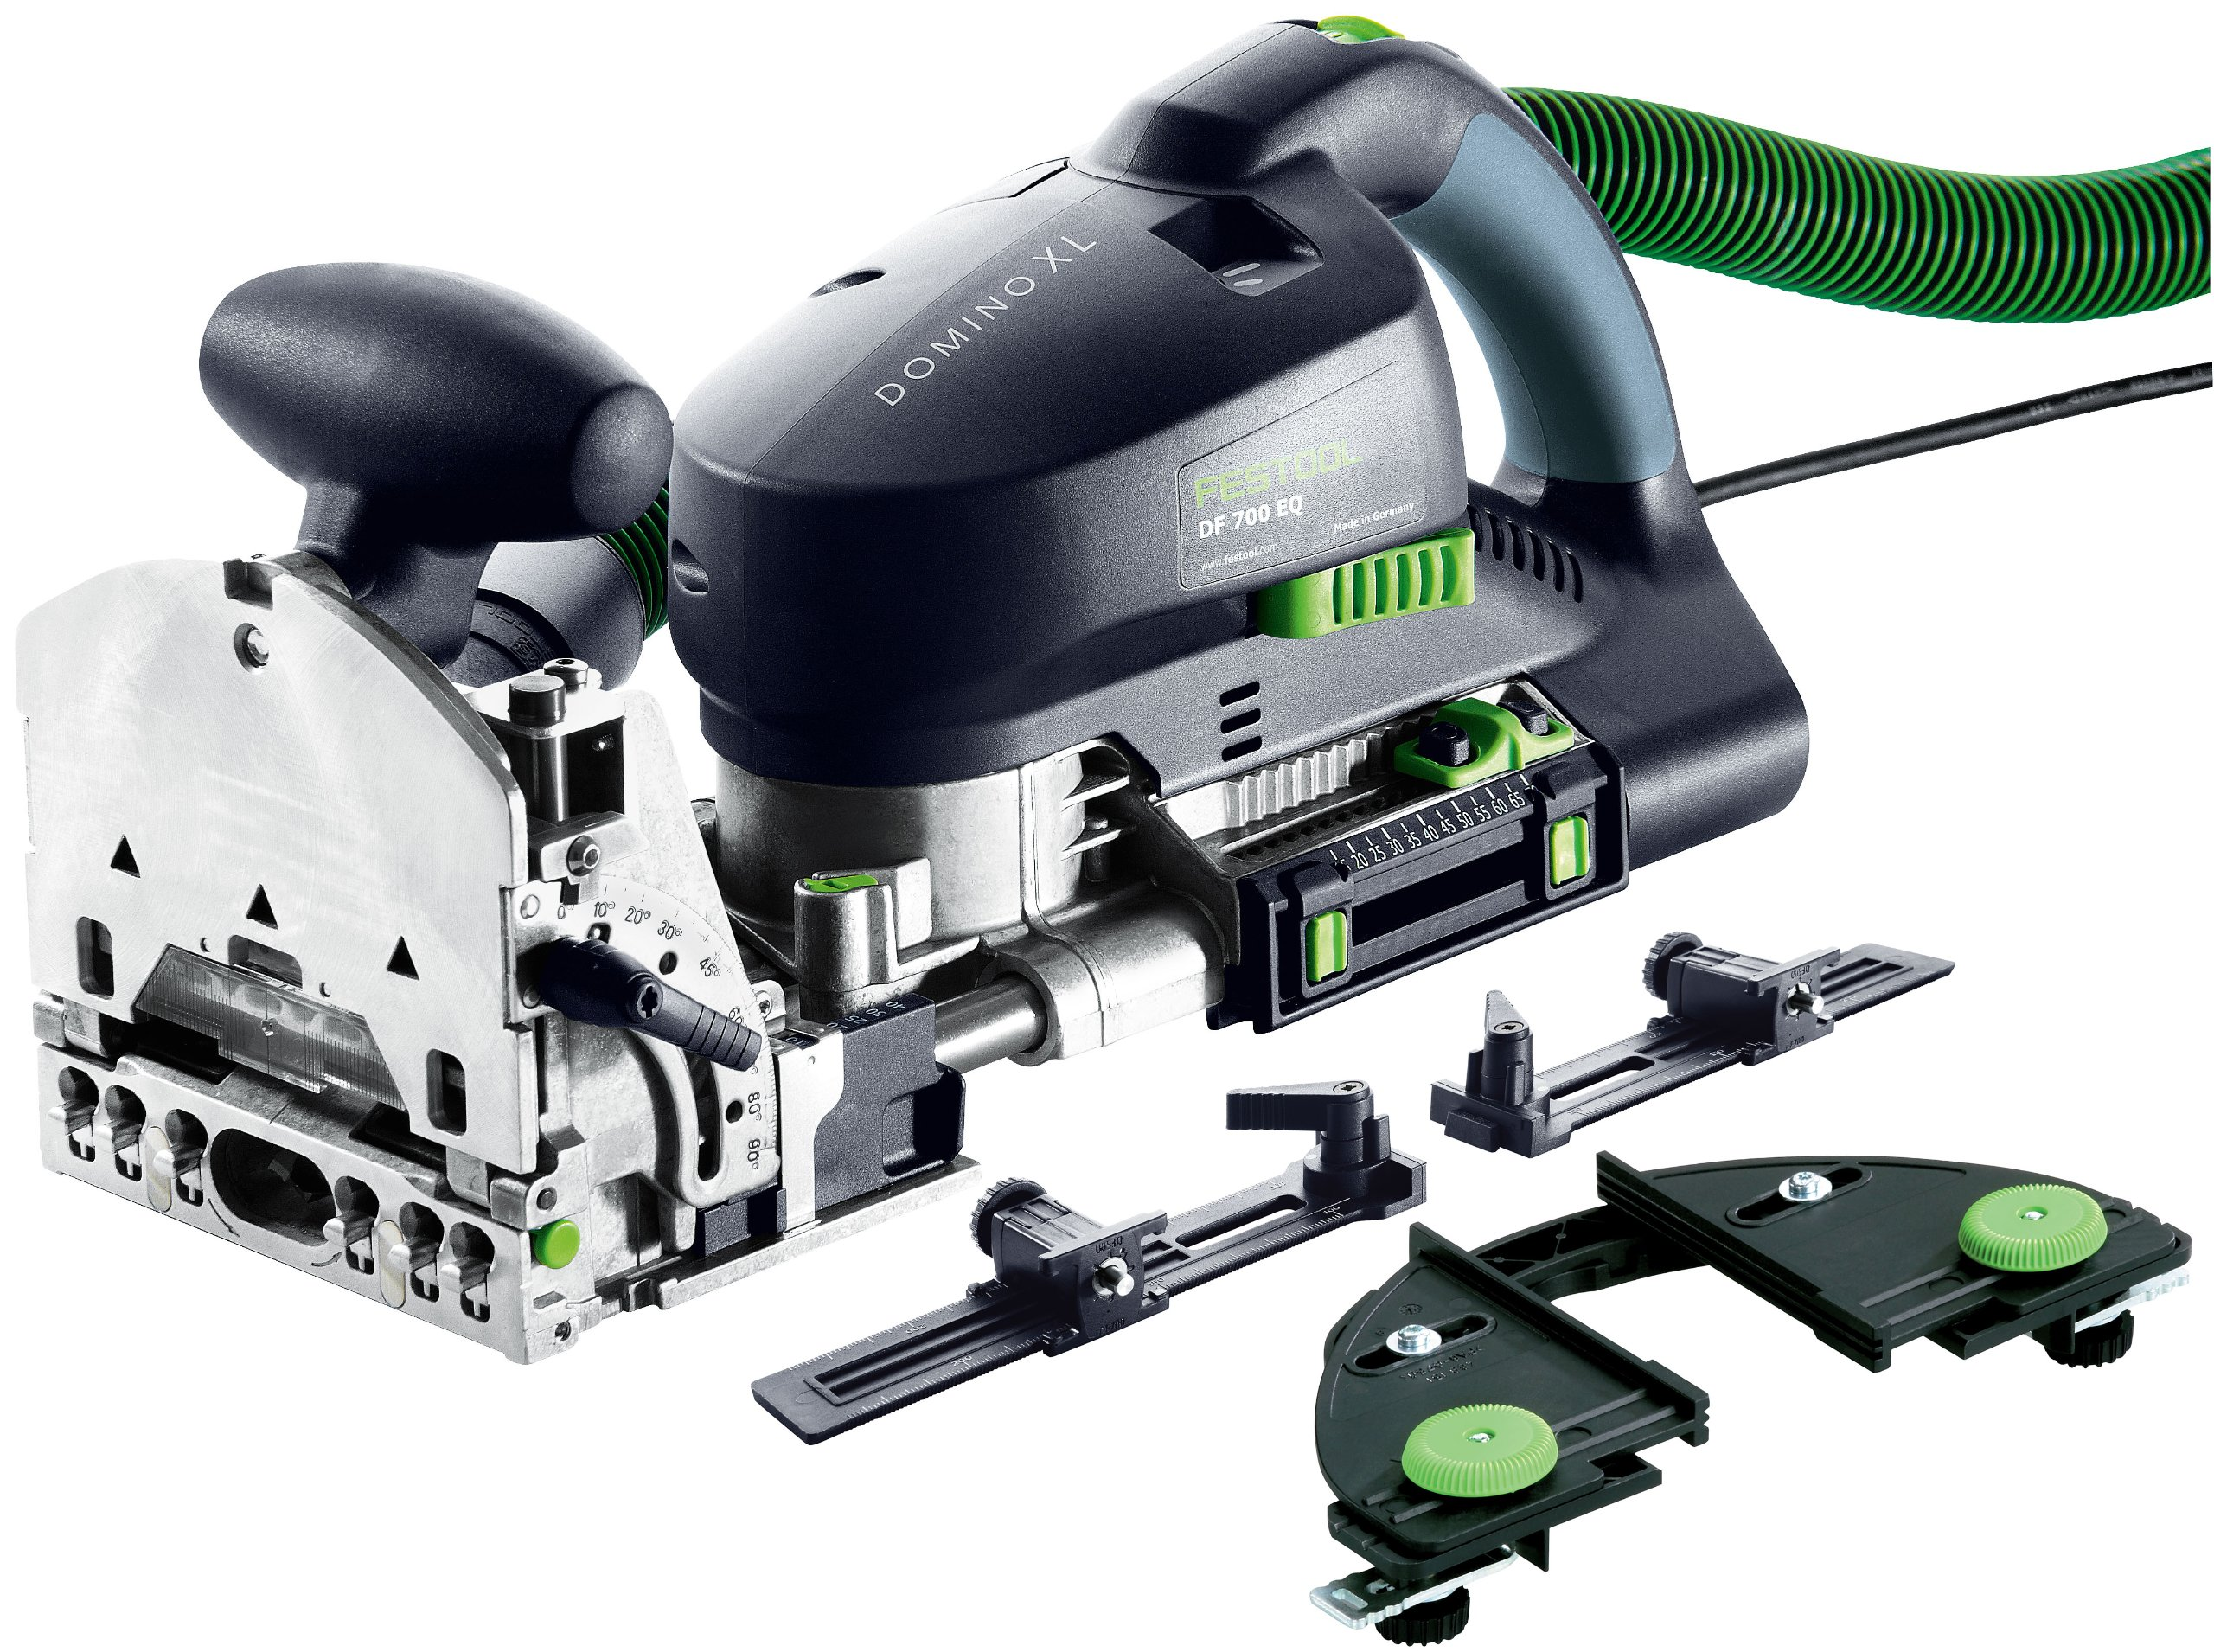 Festool 574447 XL DF 700 Domino Joiner Set by Festool (Image #7)